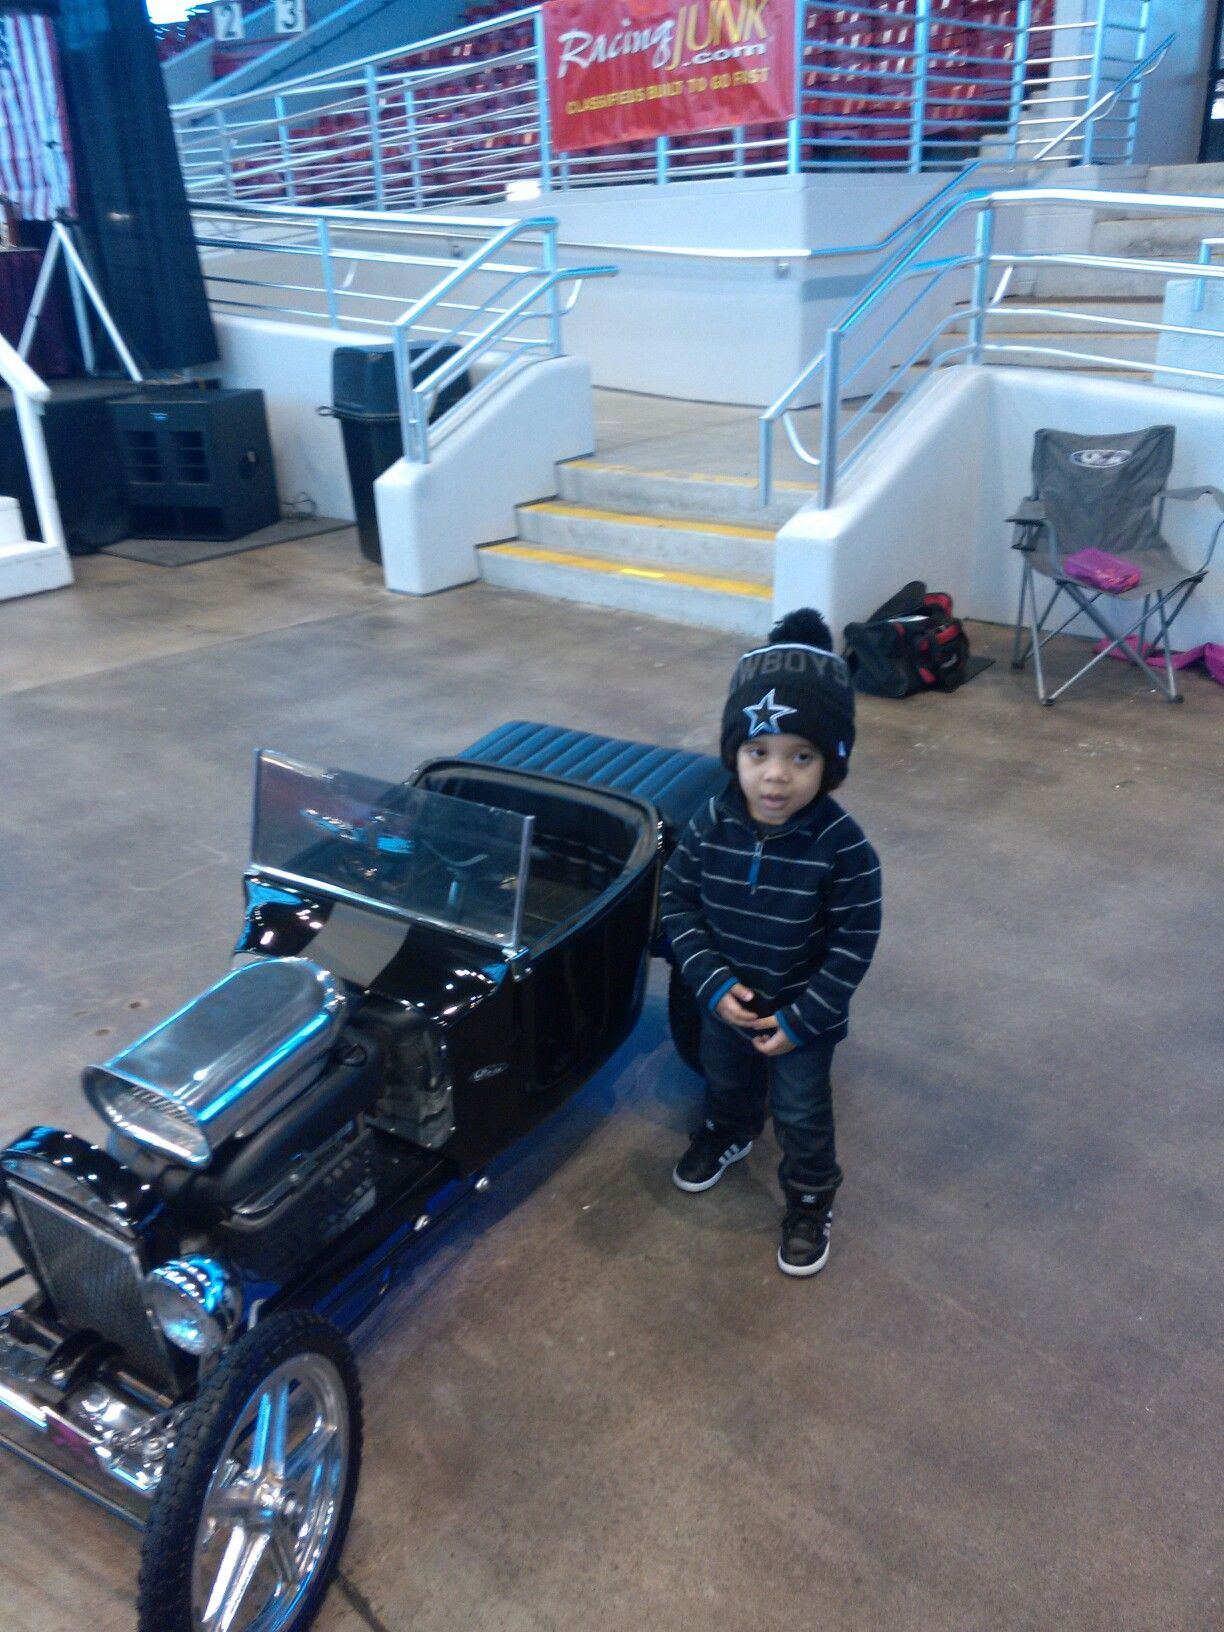 Car Show In Raleigh North Carolina Everything Baby Pinterest - Raleigh car show